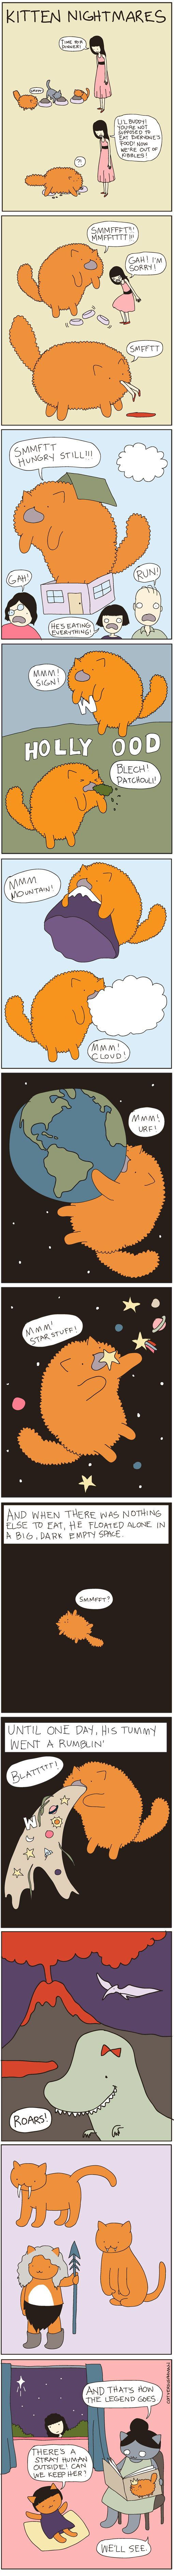 How Cats Plan On Taking Over The Universe